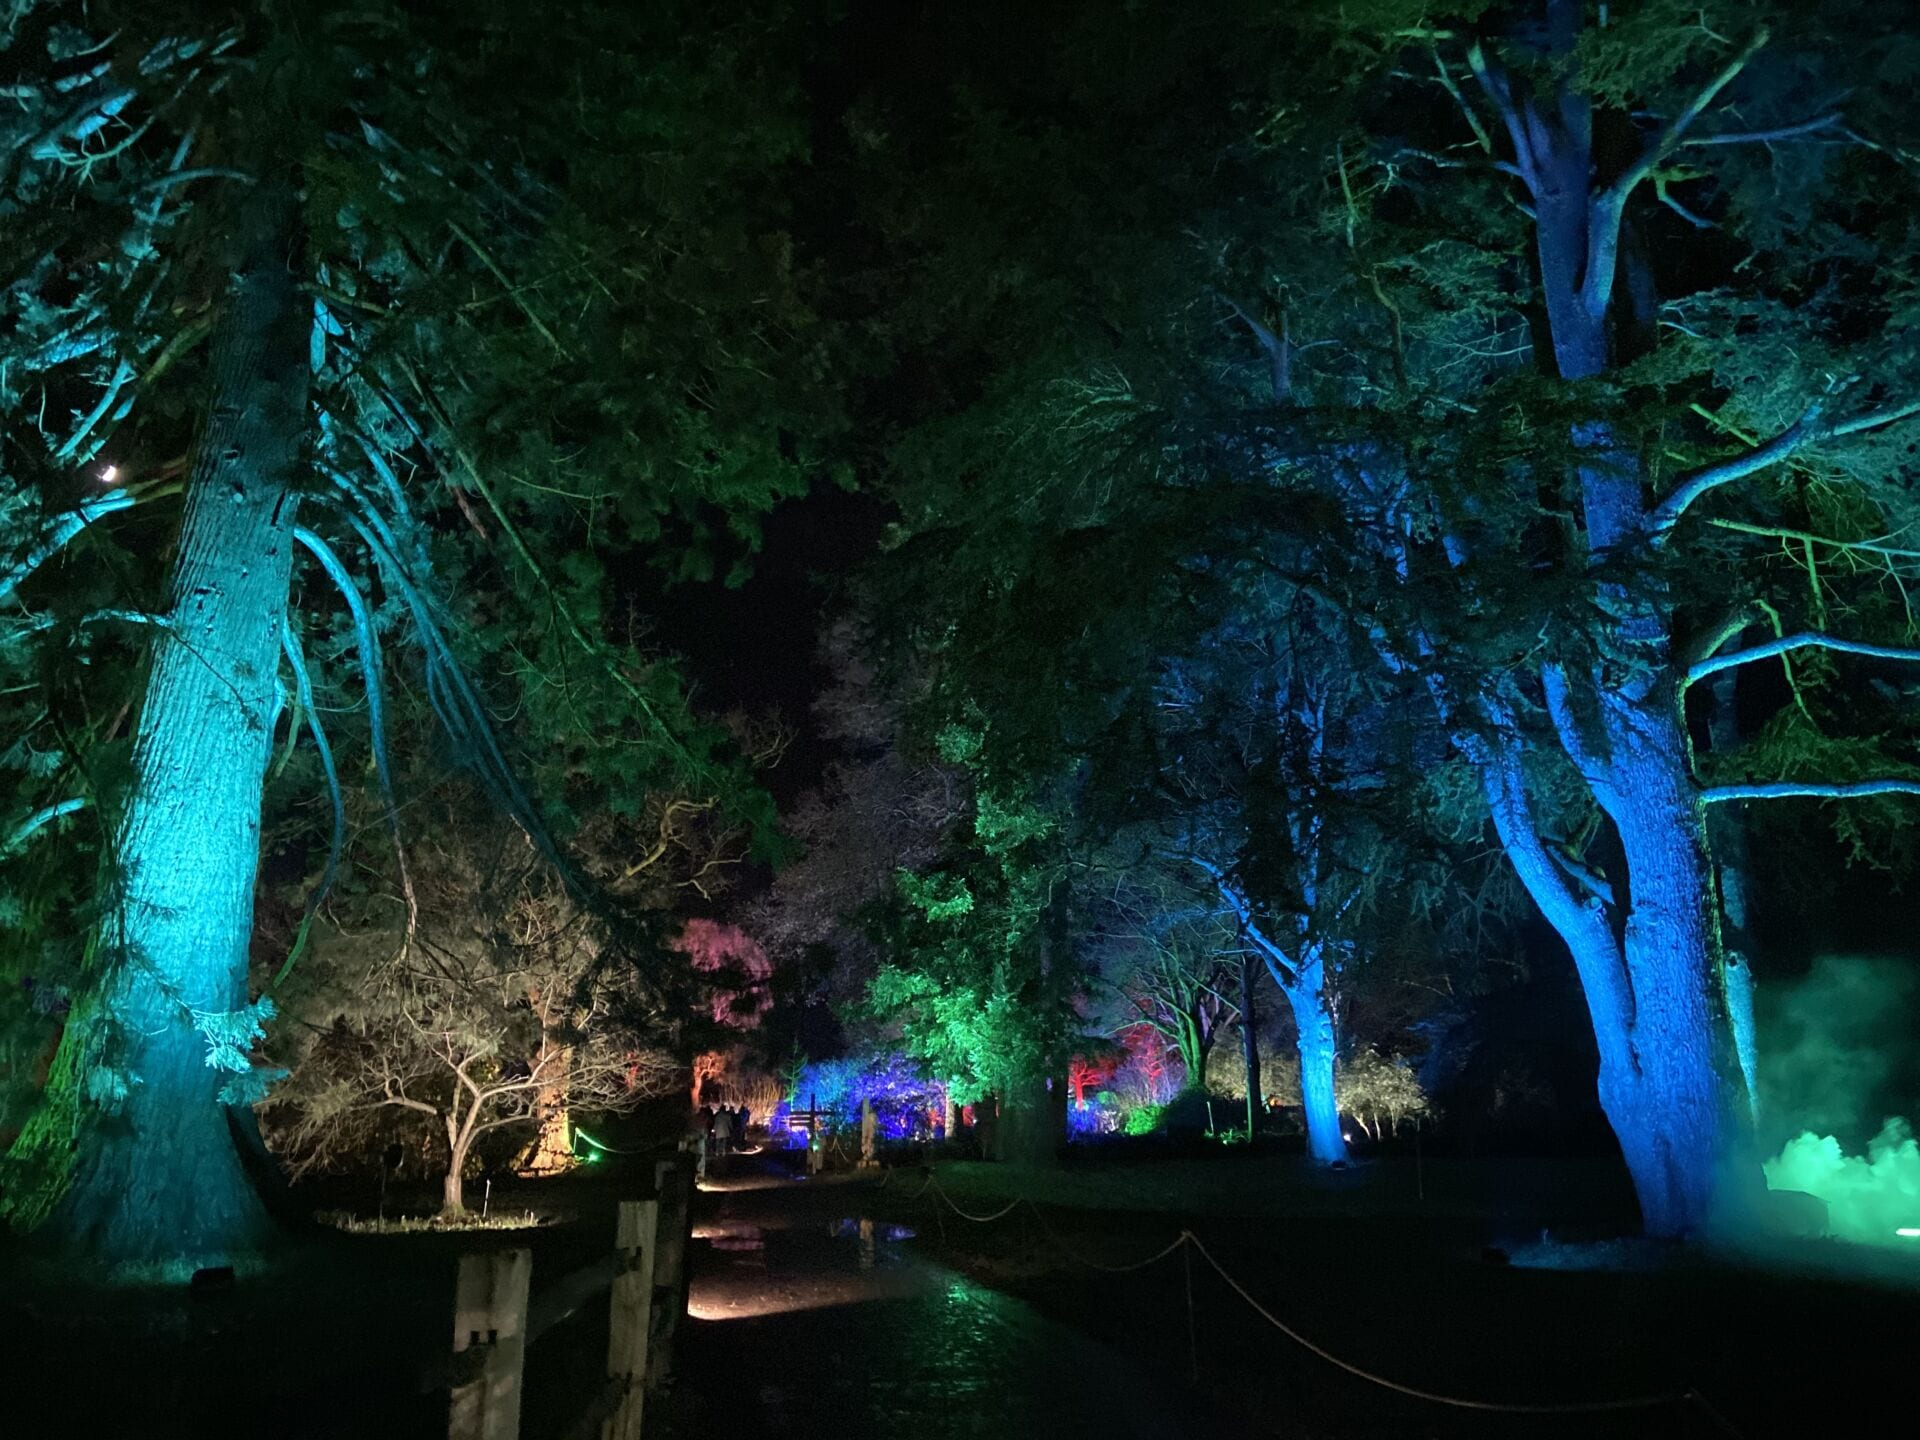 Trees lit up in Colours